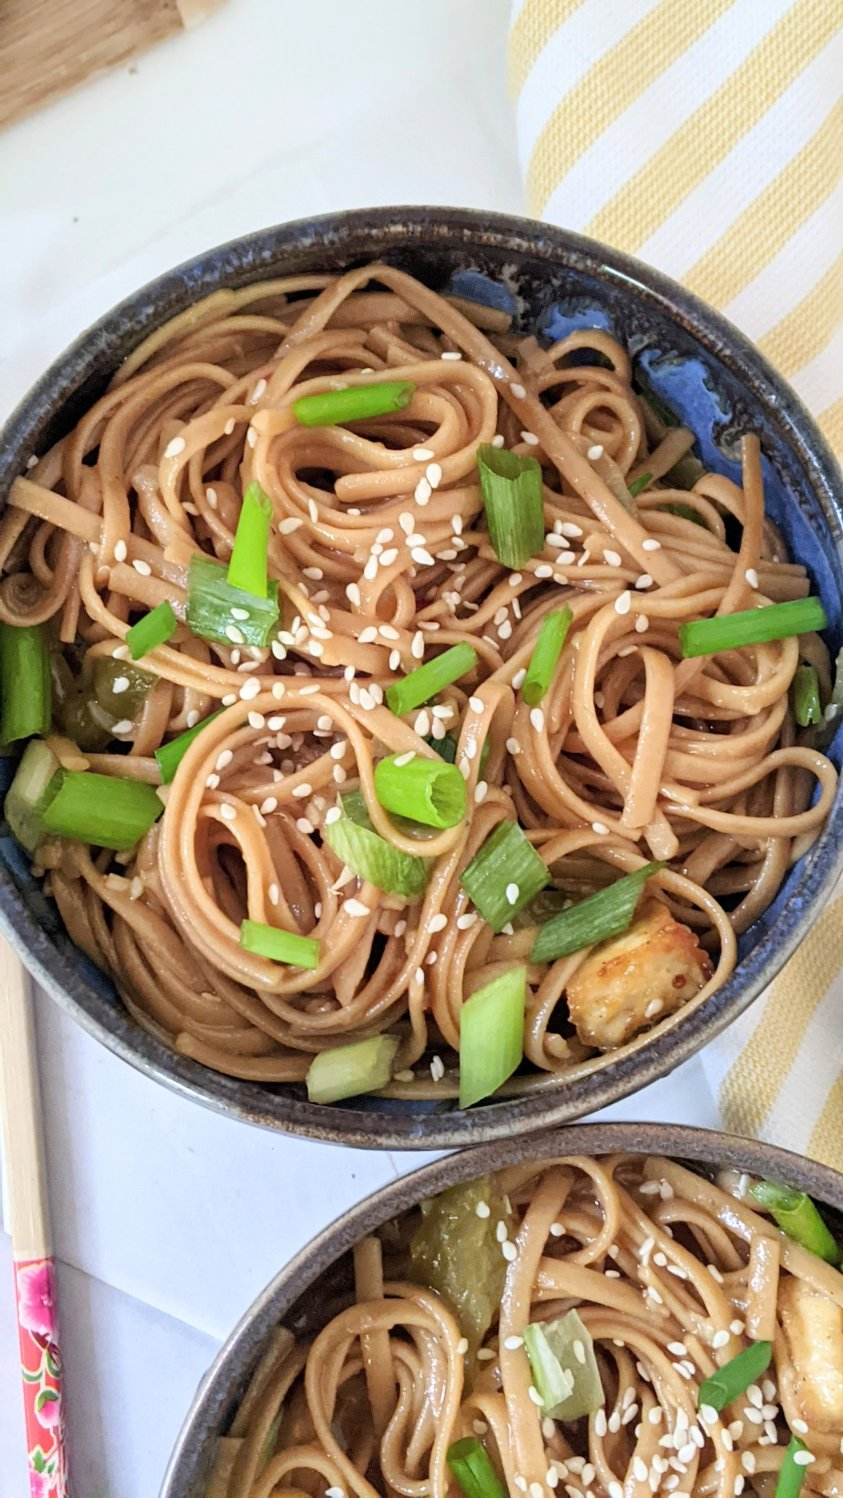 easy weeknight noodles recipe asian honey garlic pasta recipe vegetarian pressure cooker noodles recipes instant pot best pastas for dinner for busy families